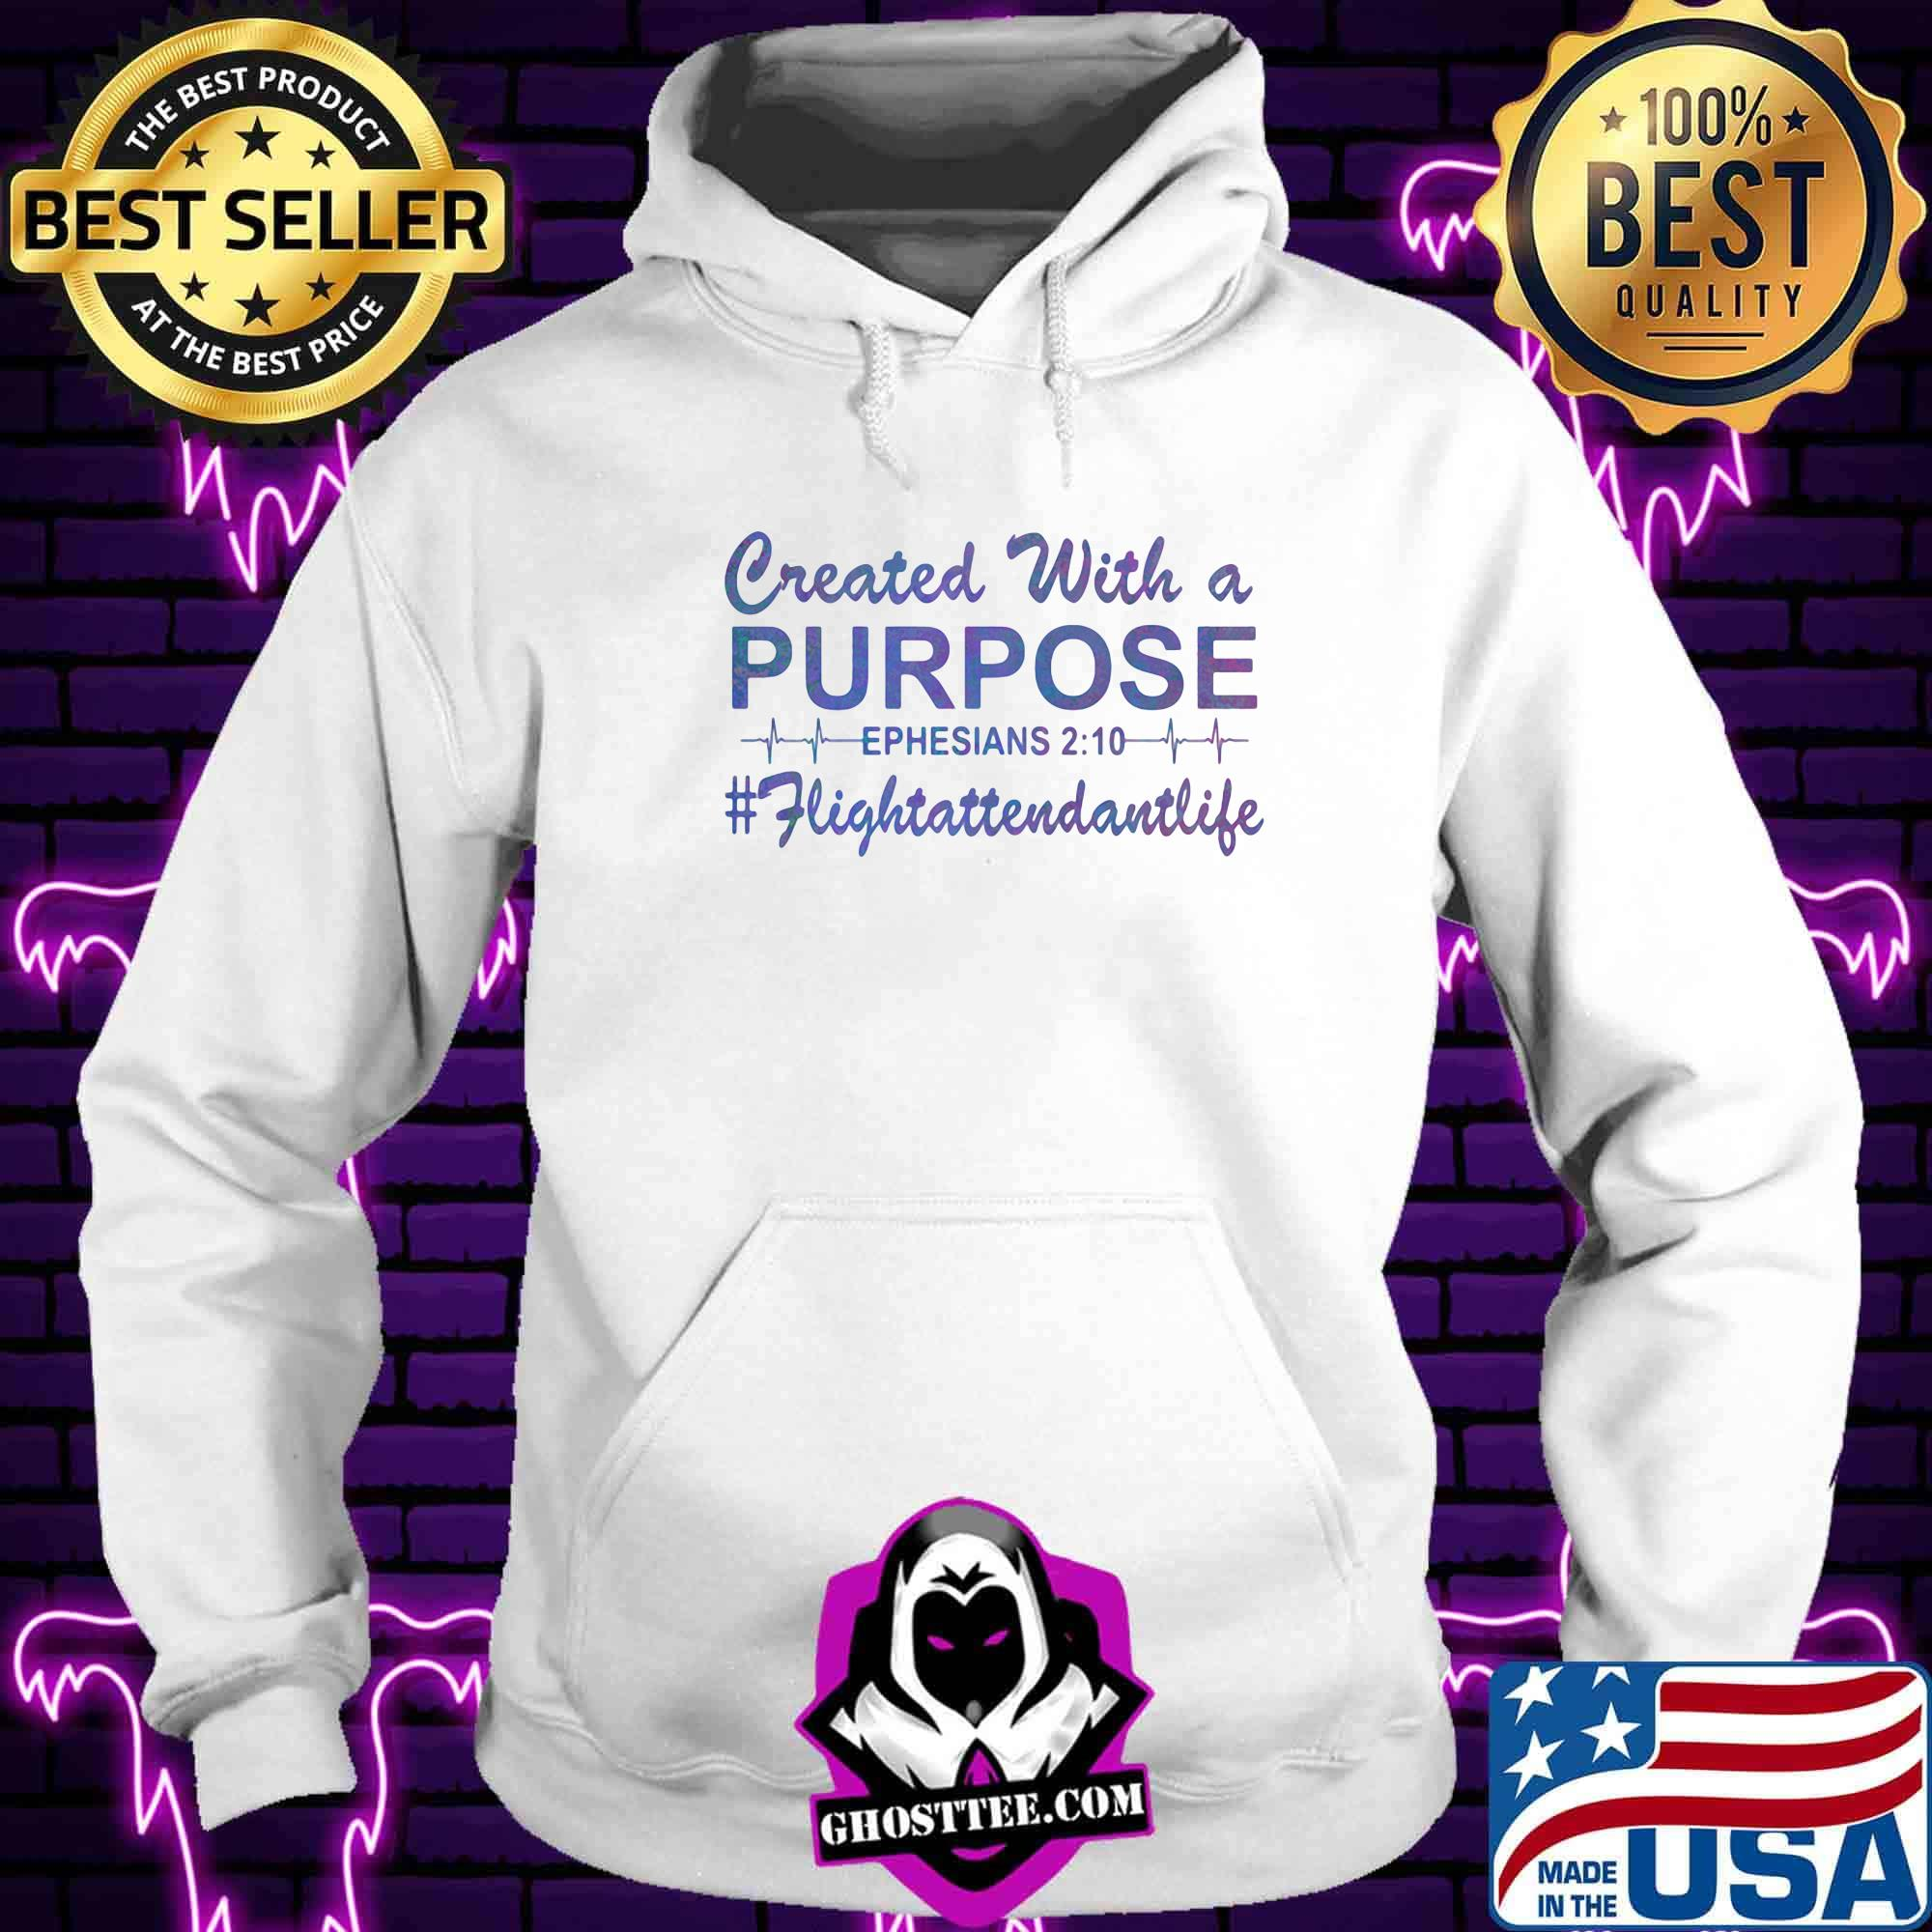 ba265209 created with a purpose ephesians fligtattendantllife shirt hoodie - Home